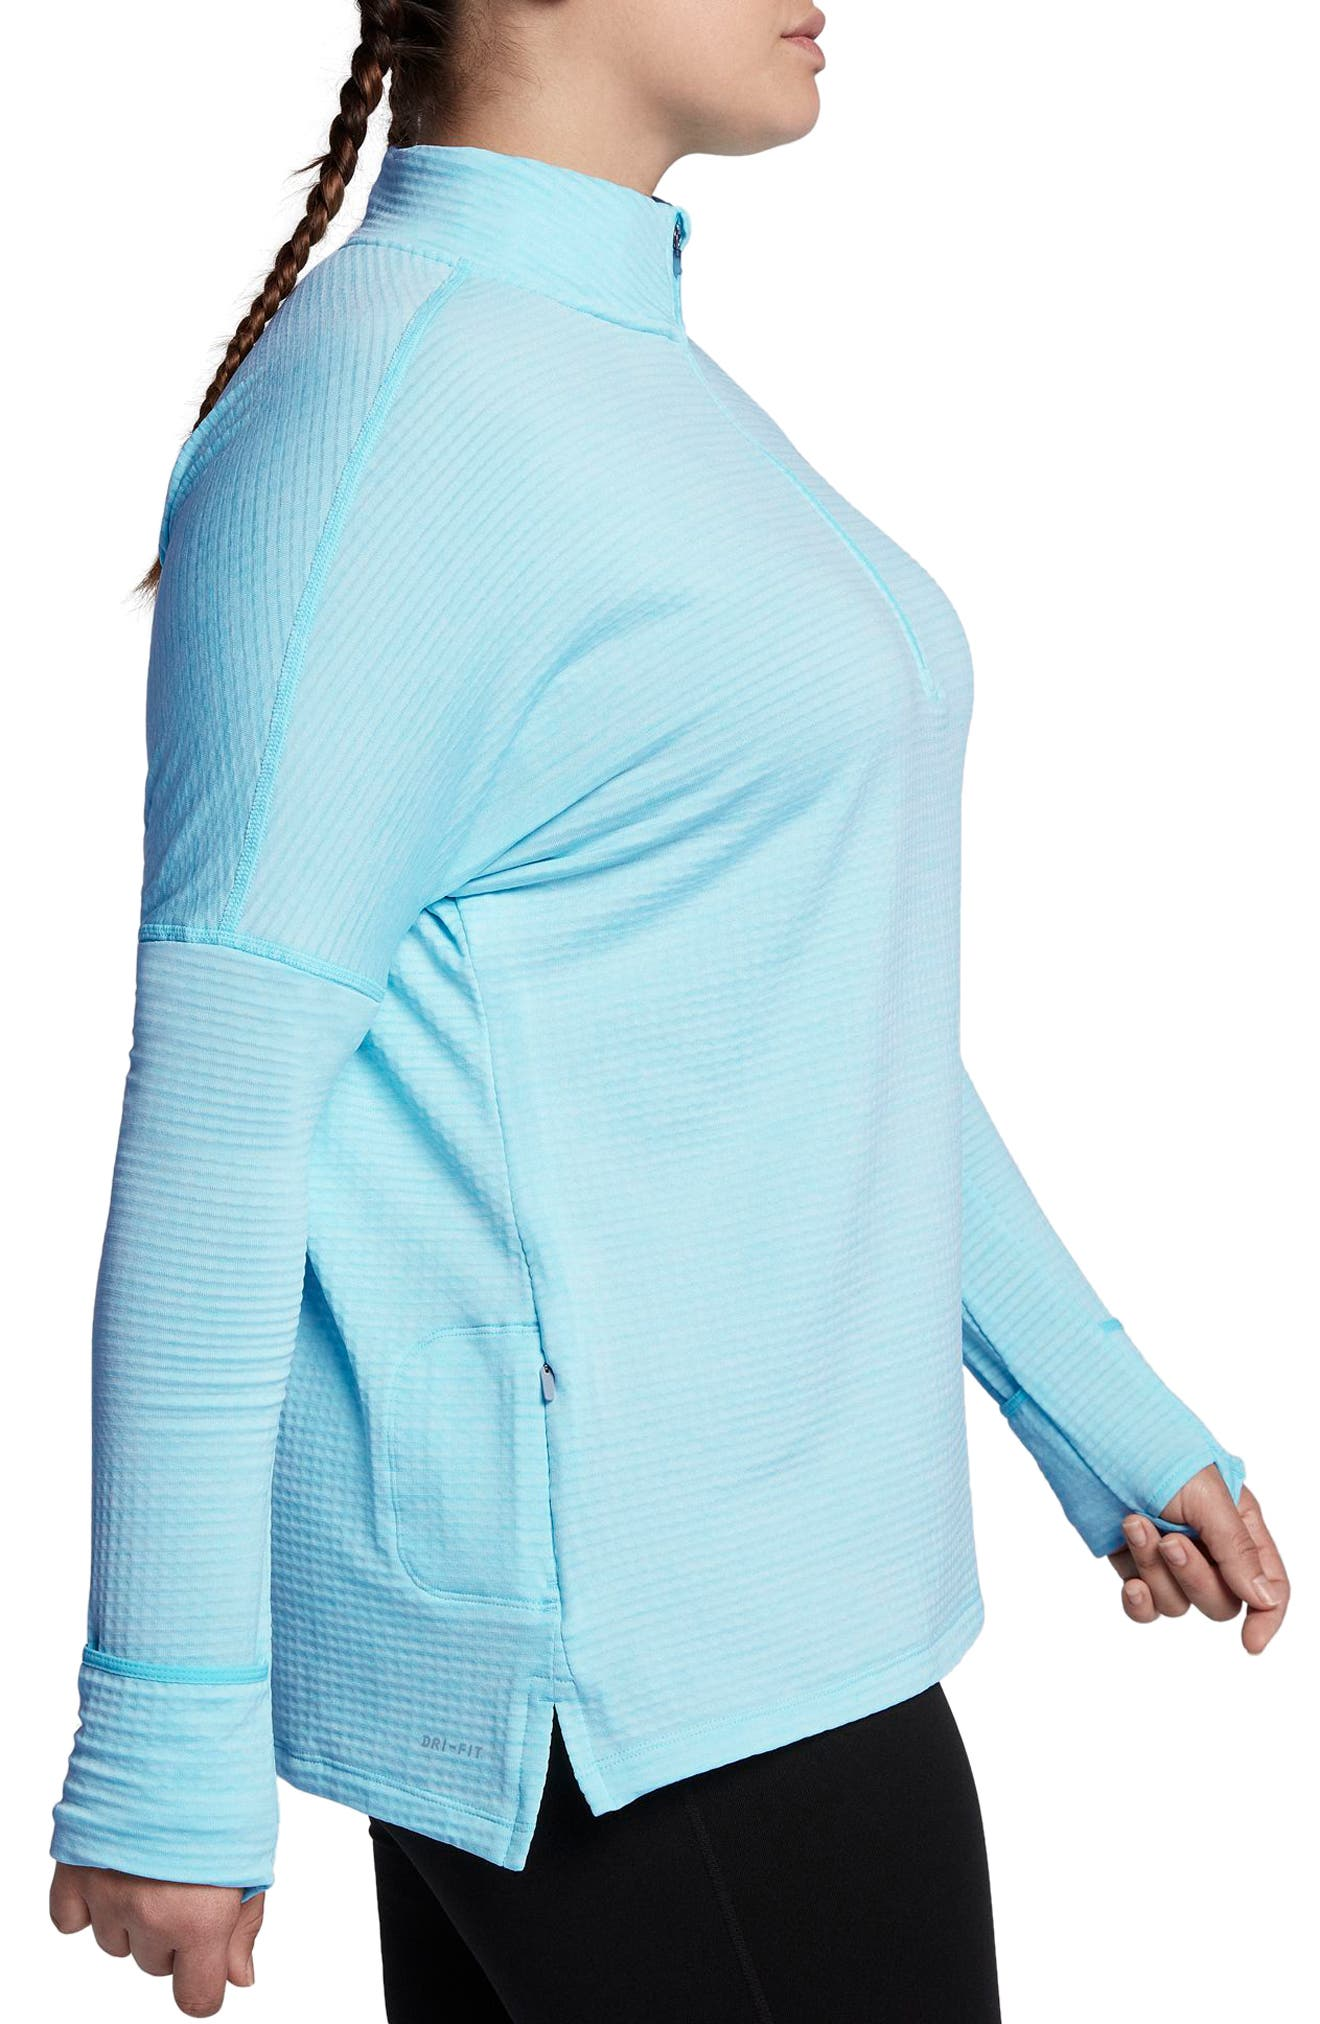 Sphere Element Long Sleeve Running Top,                             Alternate thumbnail 11, color,